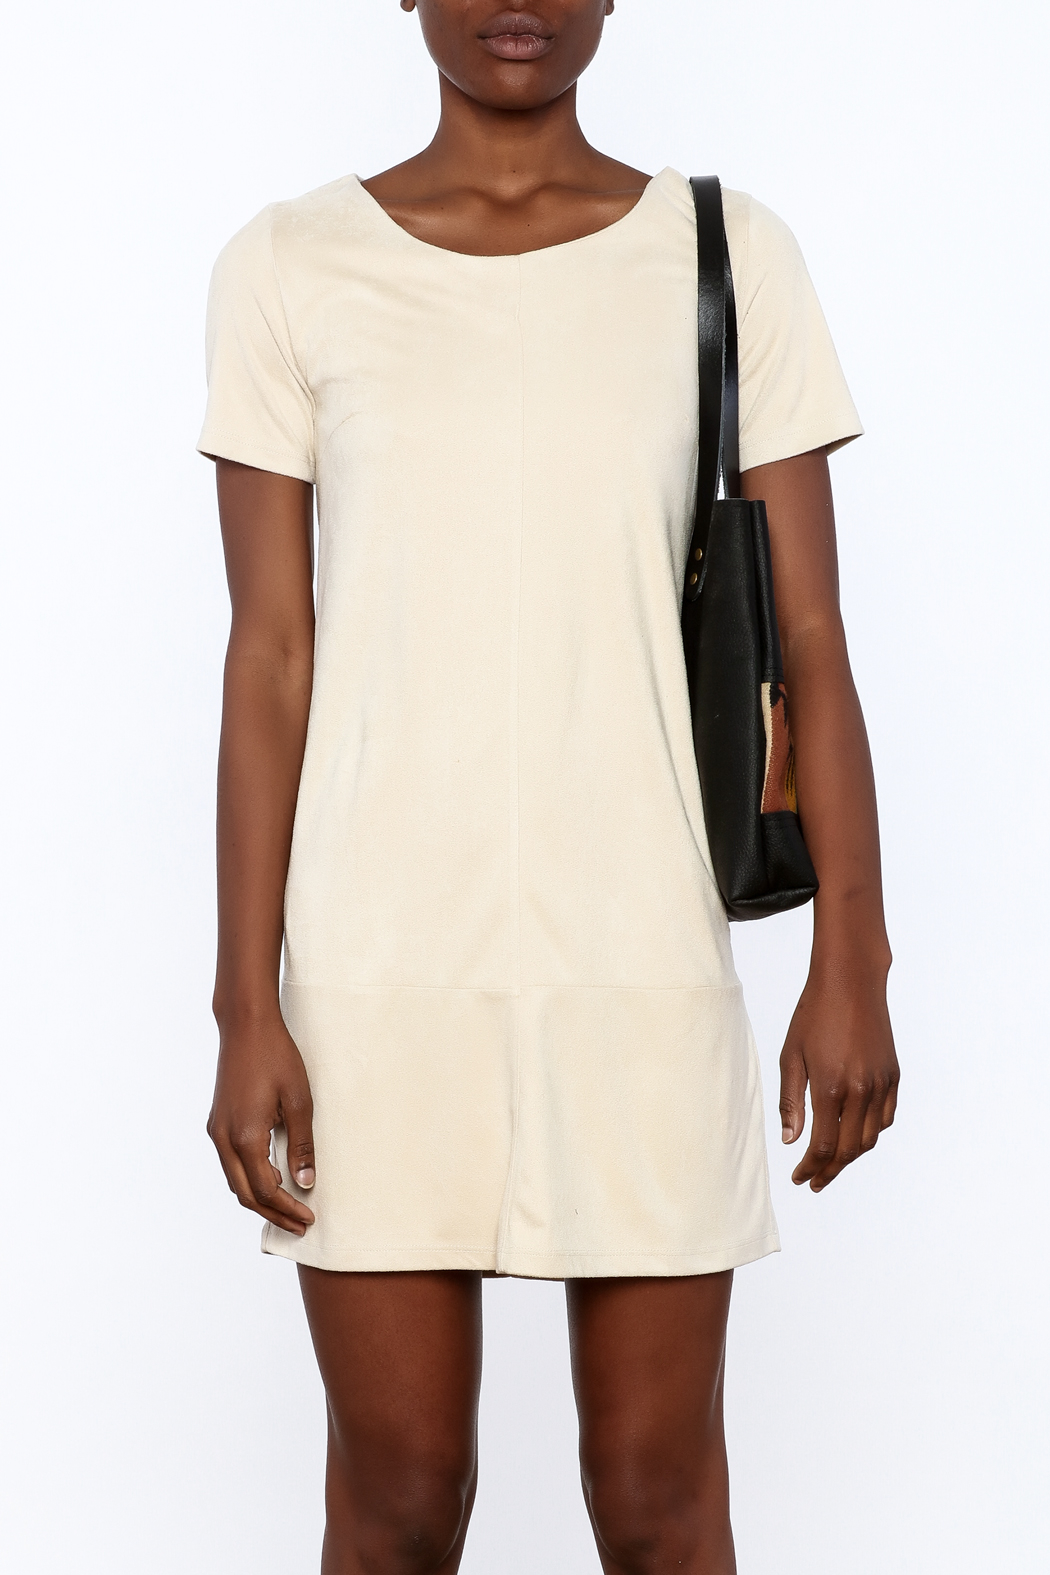 Bishop + Young Ivy Shift Dress - Side Cropped Image